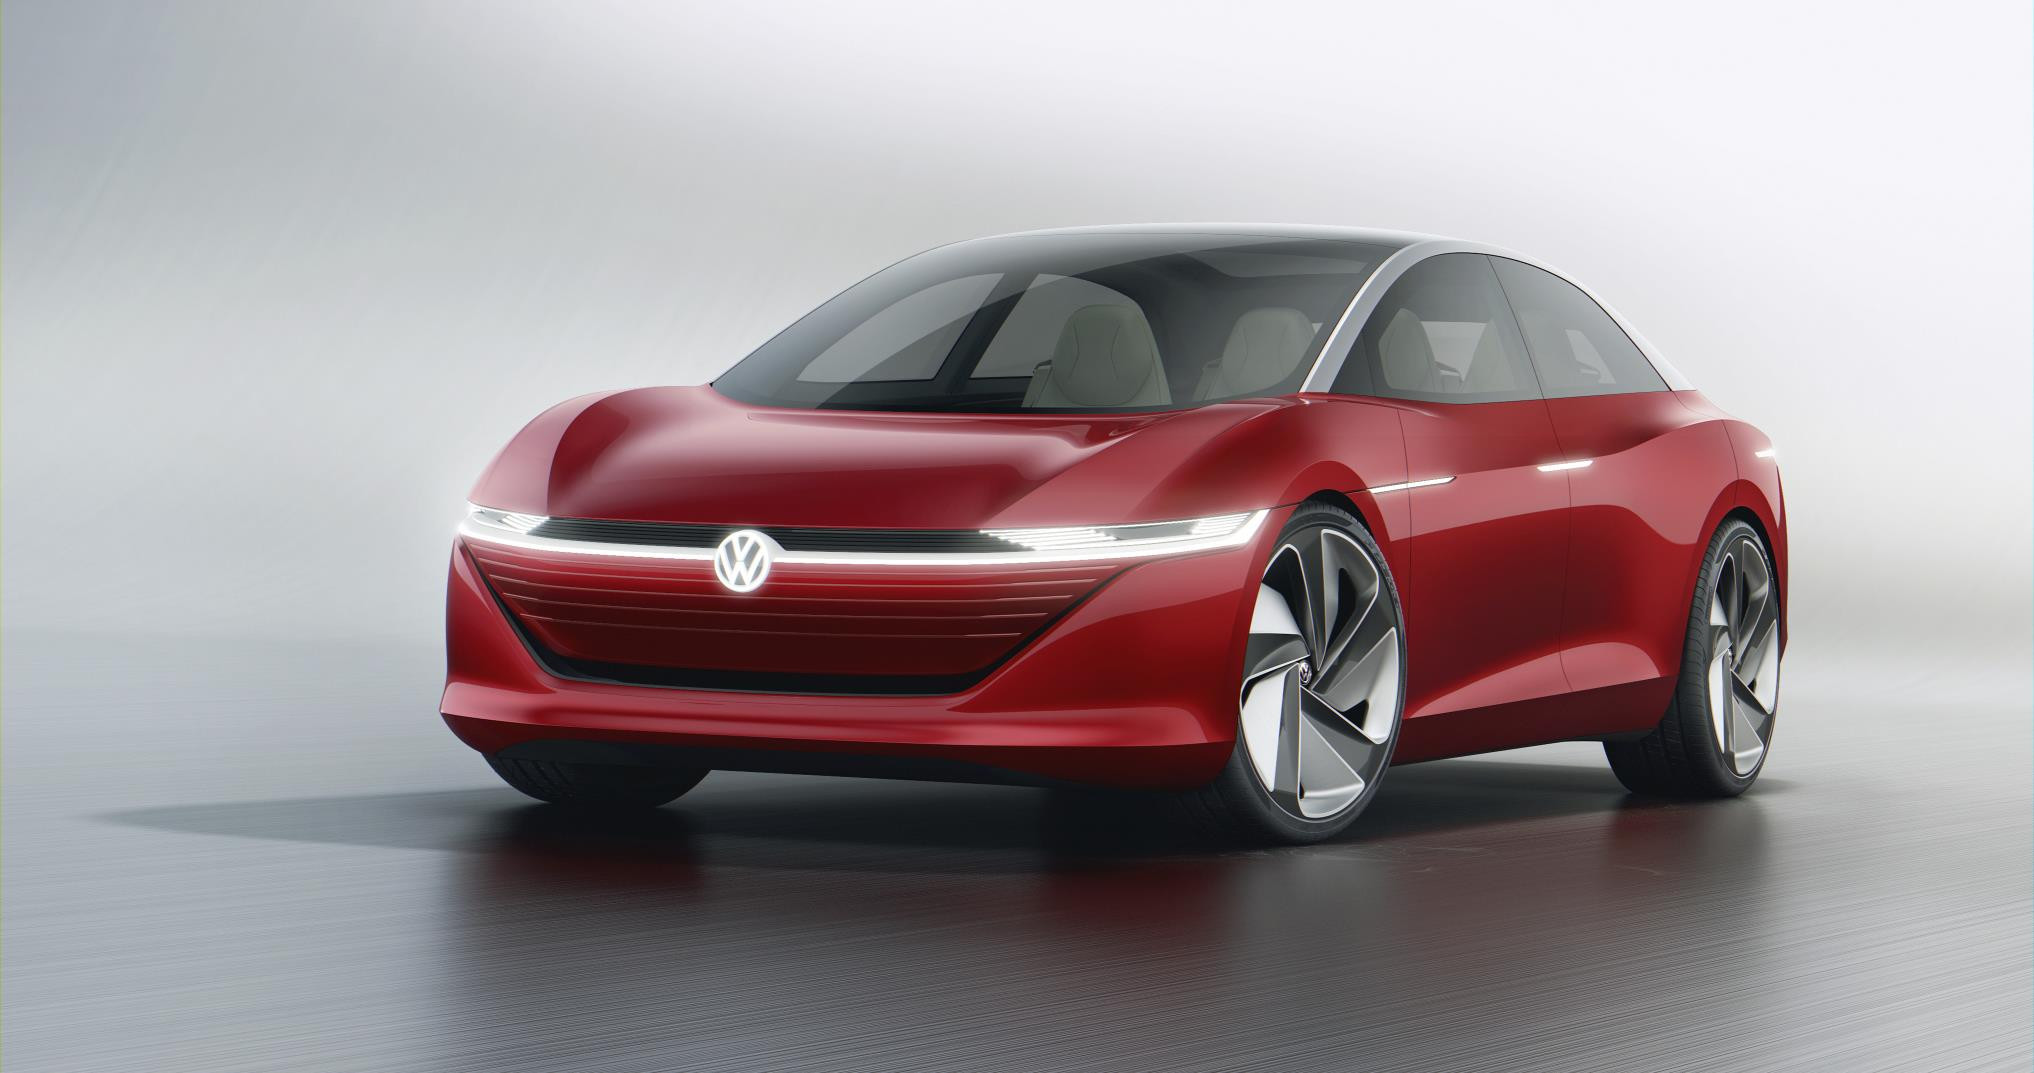 Red and silver Volkswagen Vizzion concept car